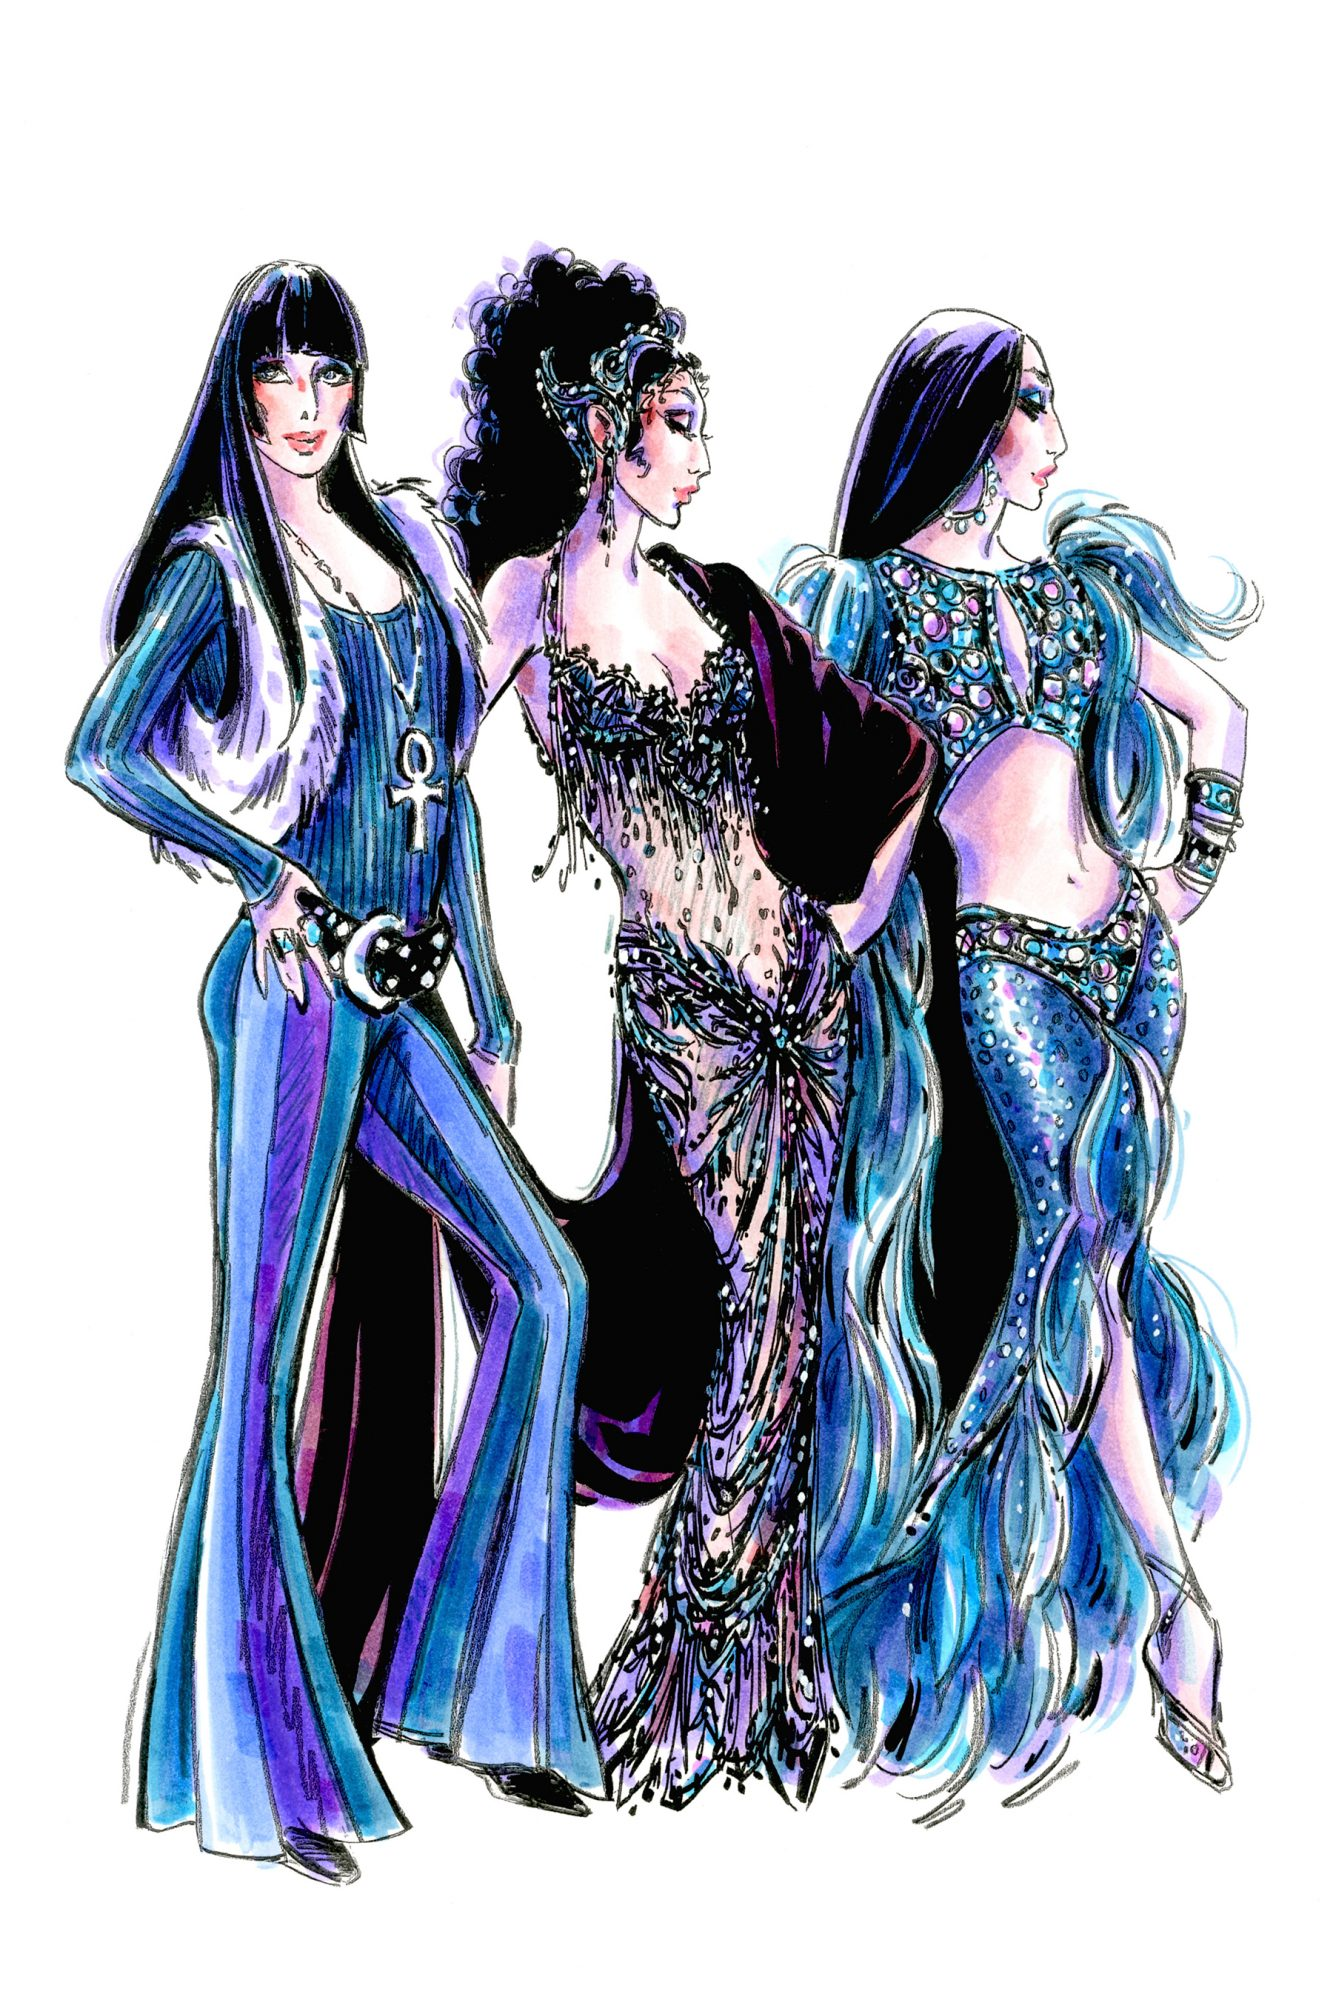 The Cher Showon BroadwayCostume Sketches